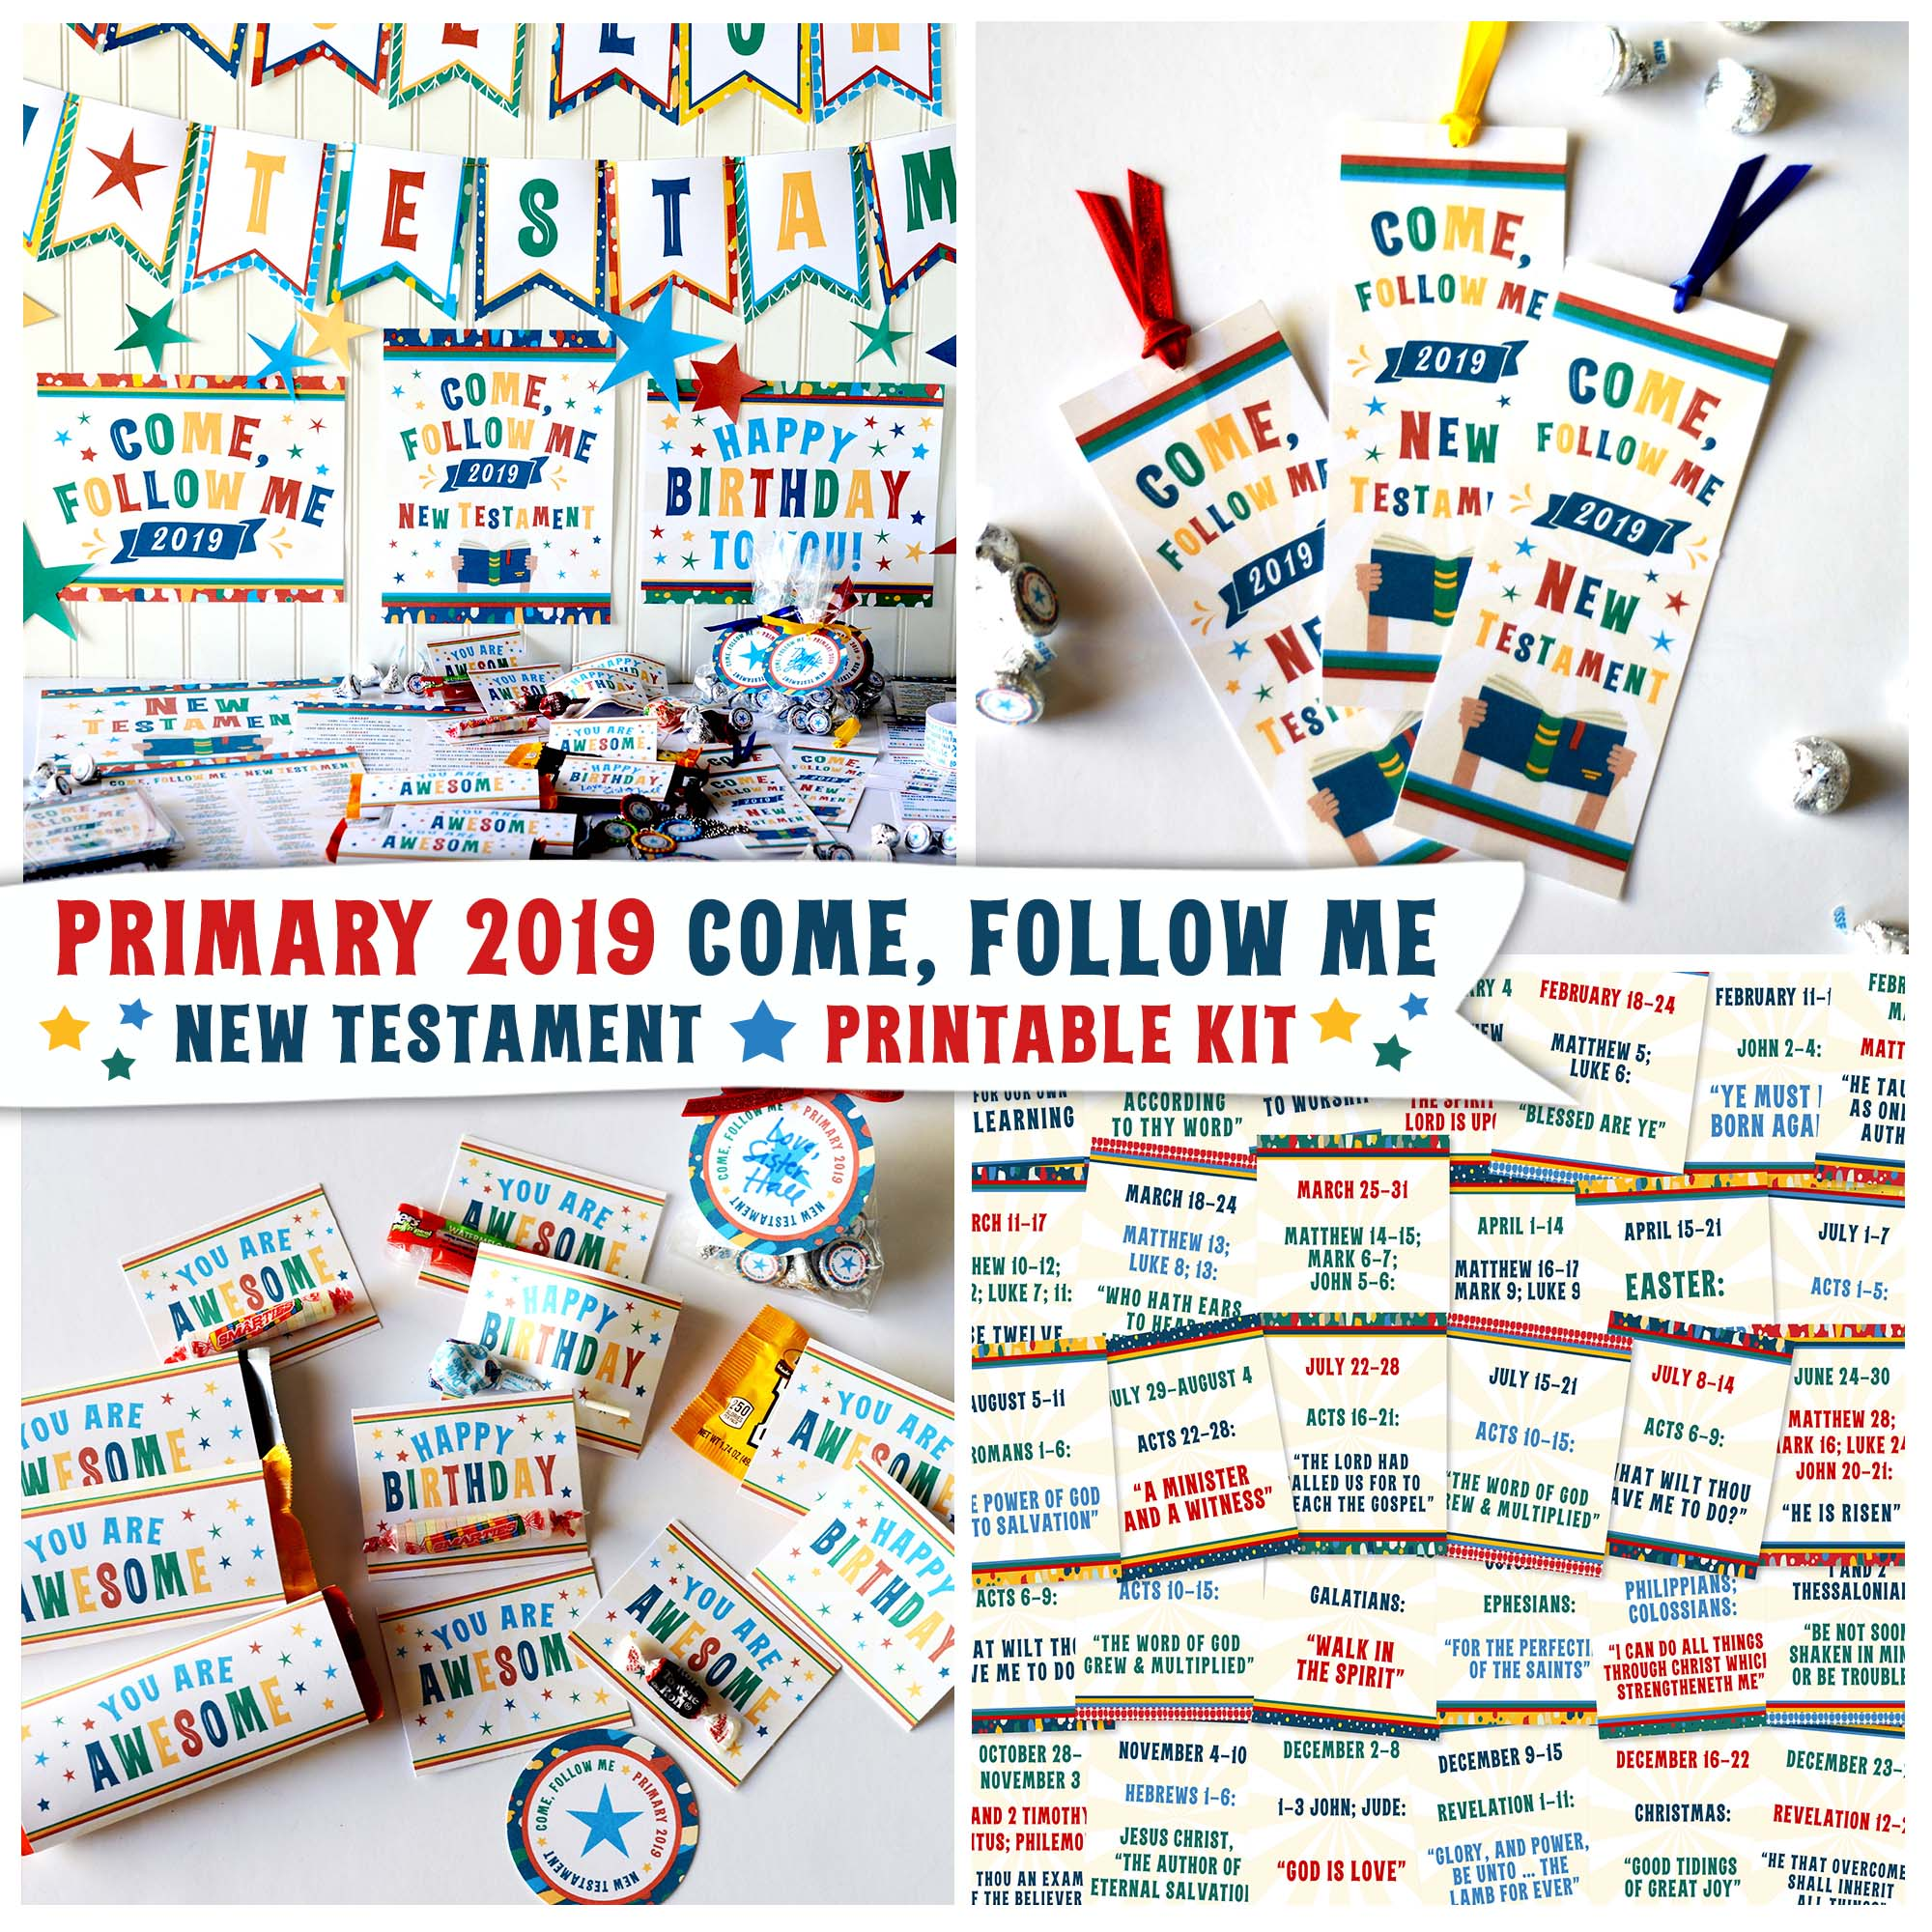 2019 Primary Come, Follow Me New Testament Printable Kit.